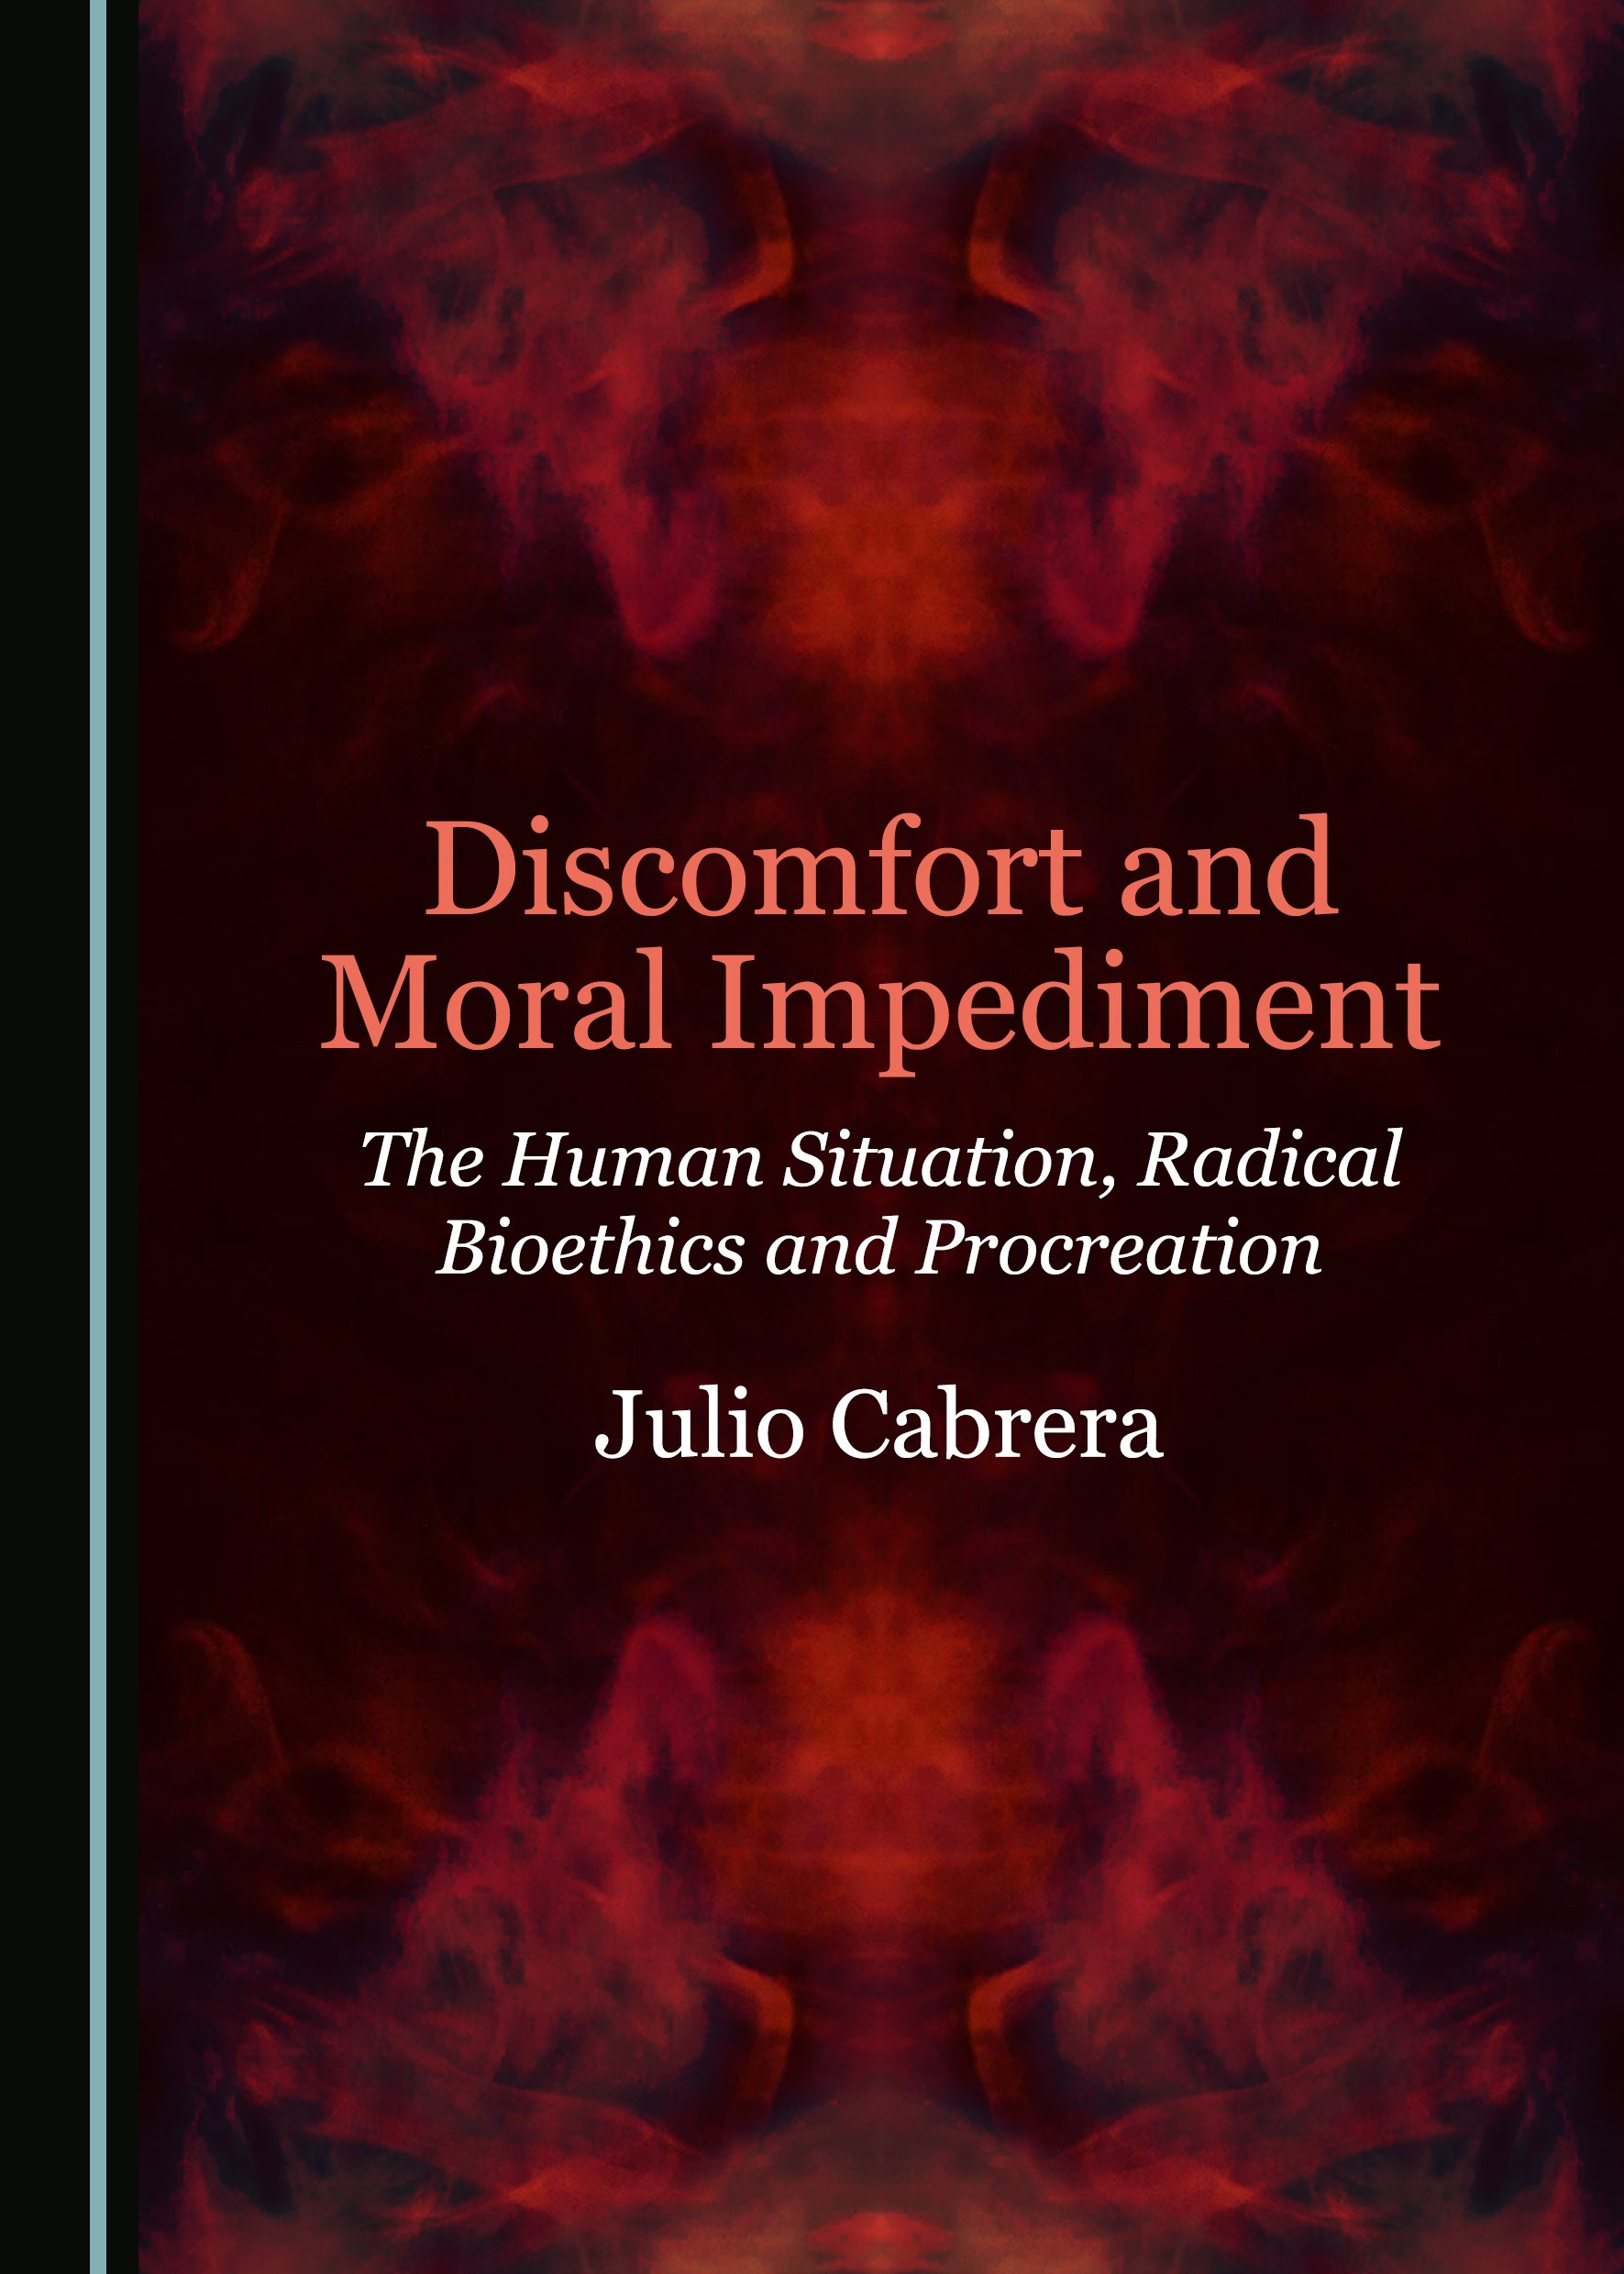 Discomfort and Moral Impediment: The Human Situation, Radical Bioethics and Procreation